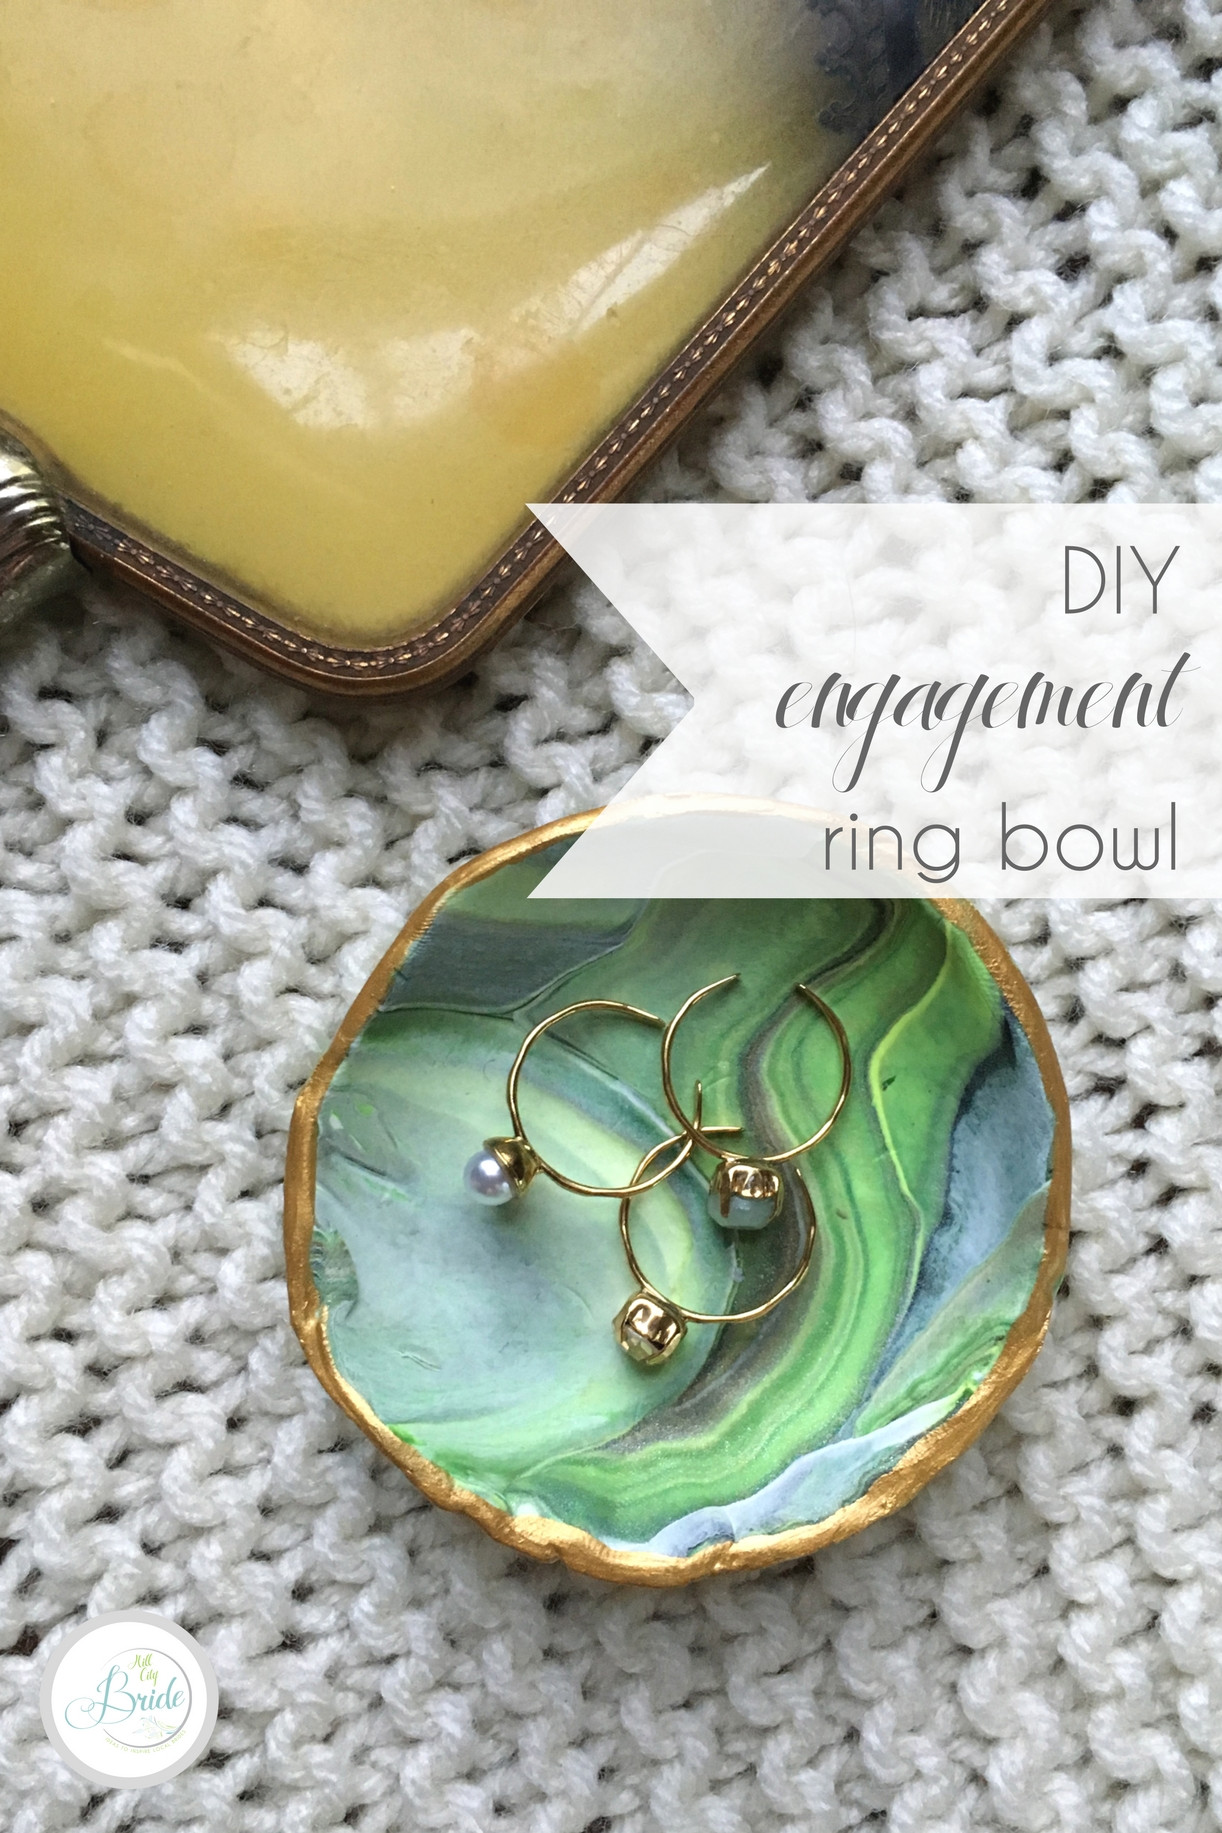 Best ideas about DIY Wedding Ring . Save or Pin DIY Engagement Ring Bowl Hill City Bride Now.